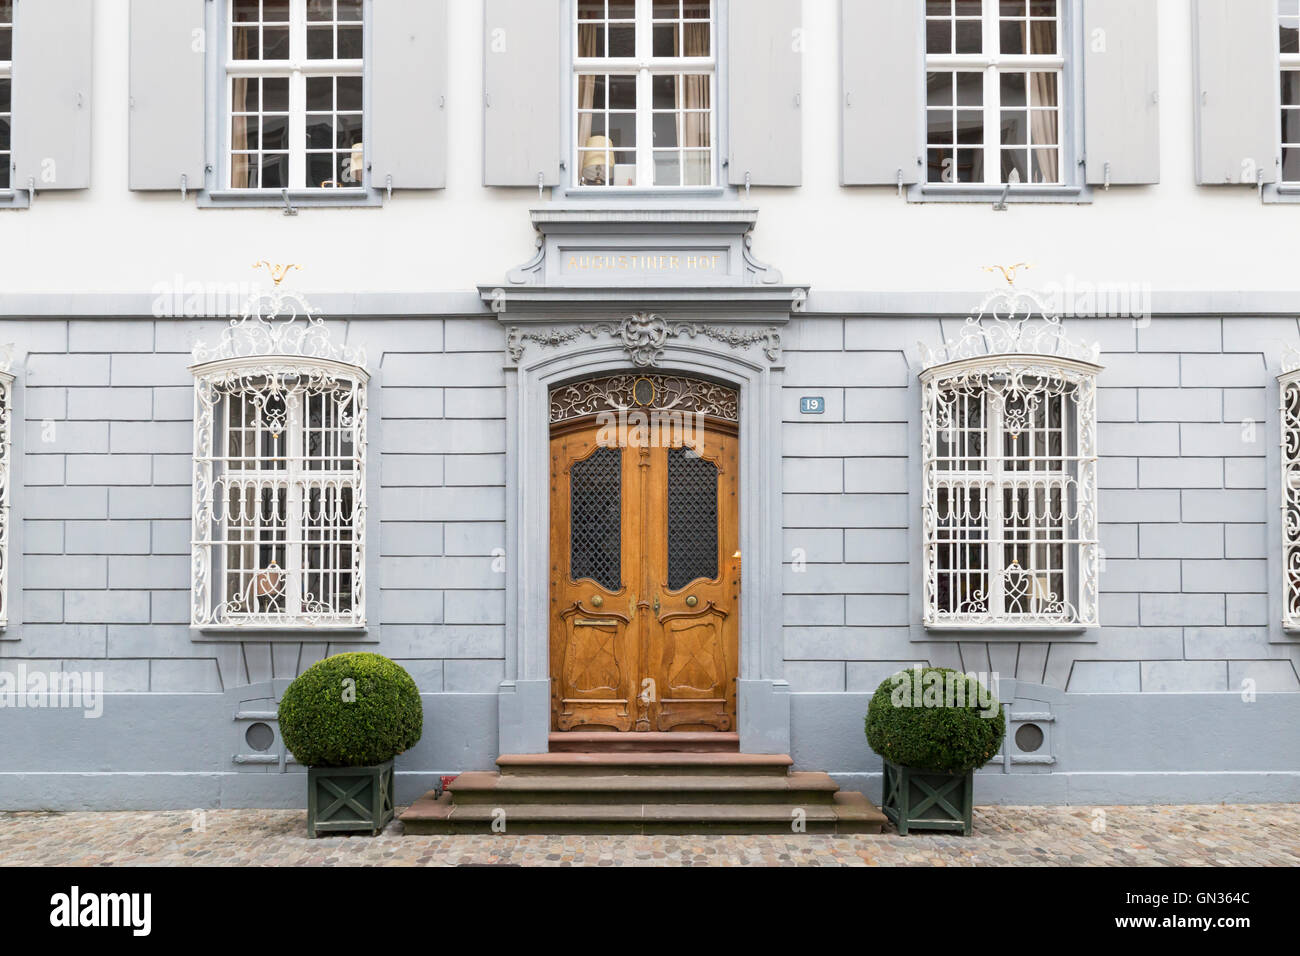 Carved Door Frame Stock Photos & Carved Door Frame Stock Images - Alamy